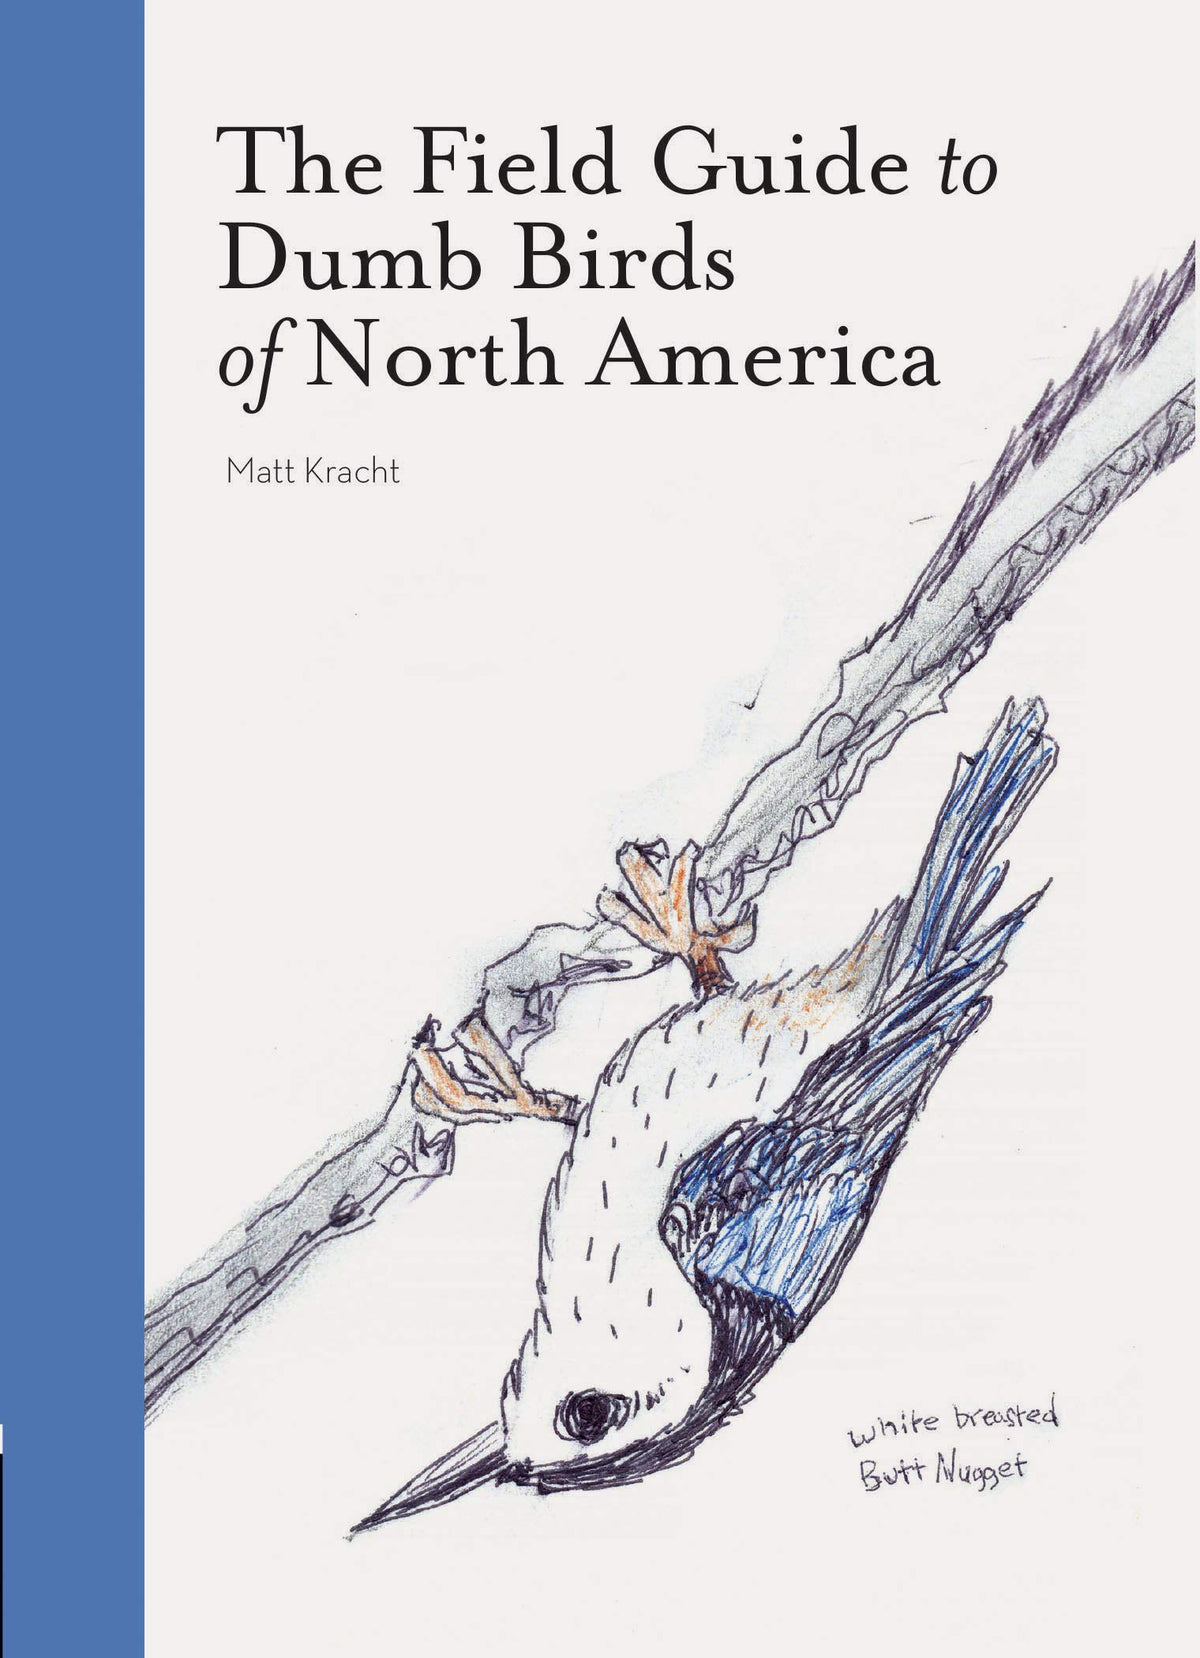 Field Guide to Dumb Birds